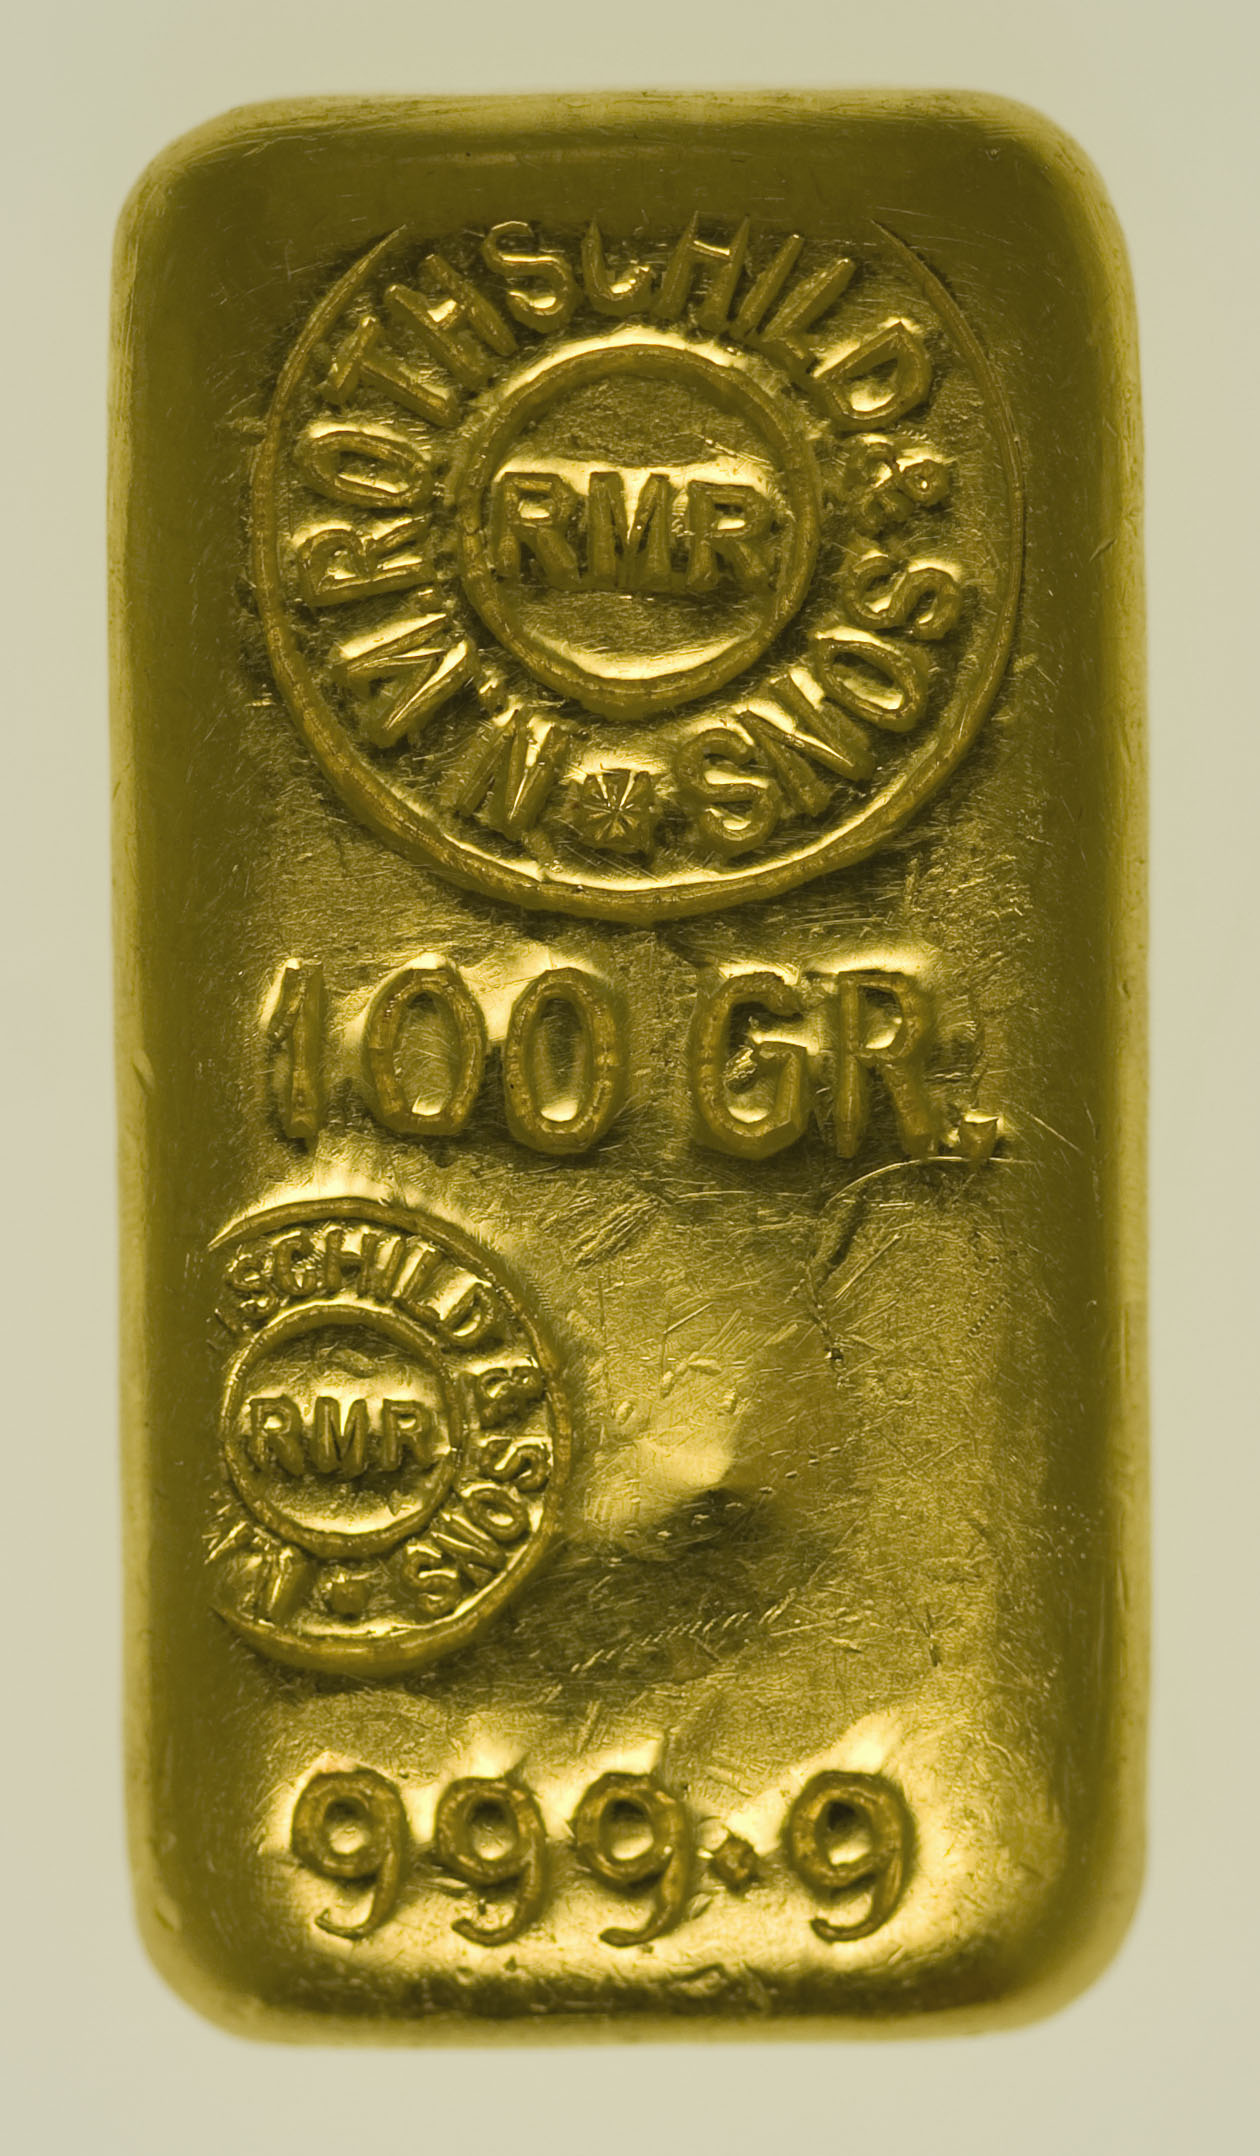 goldbarren - Goldbarren 100 Gramm Großbritannien N.M. Rothschild & Sons Limited